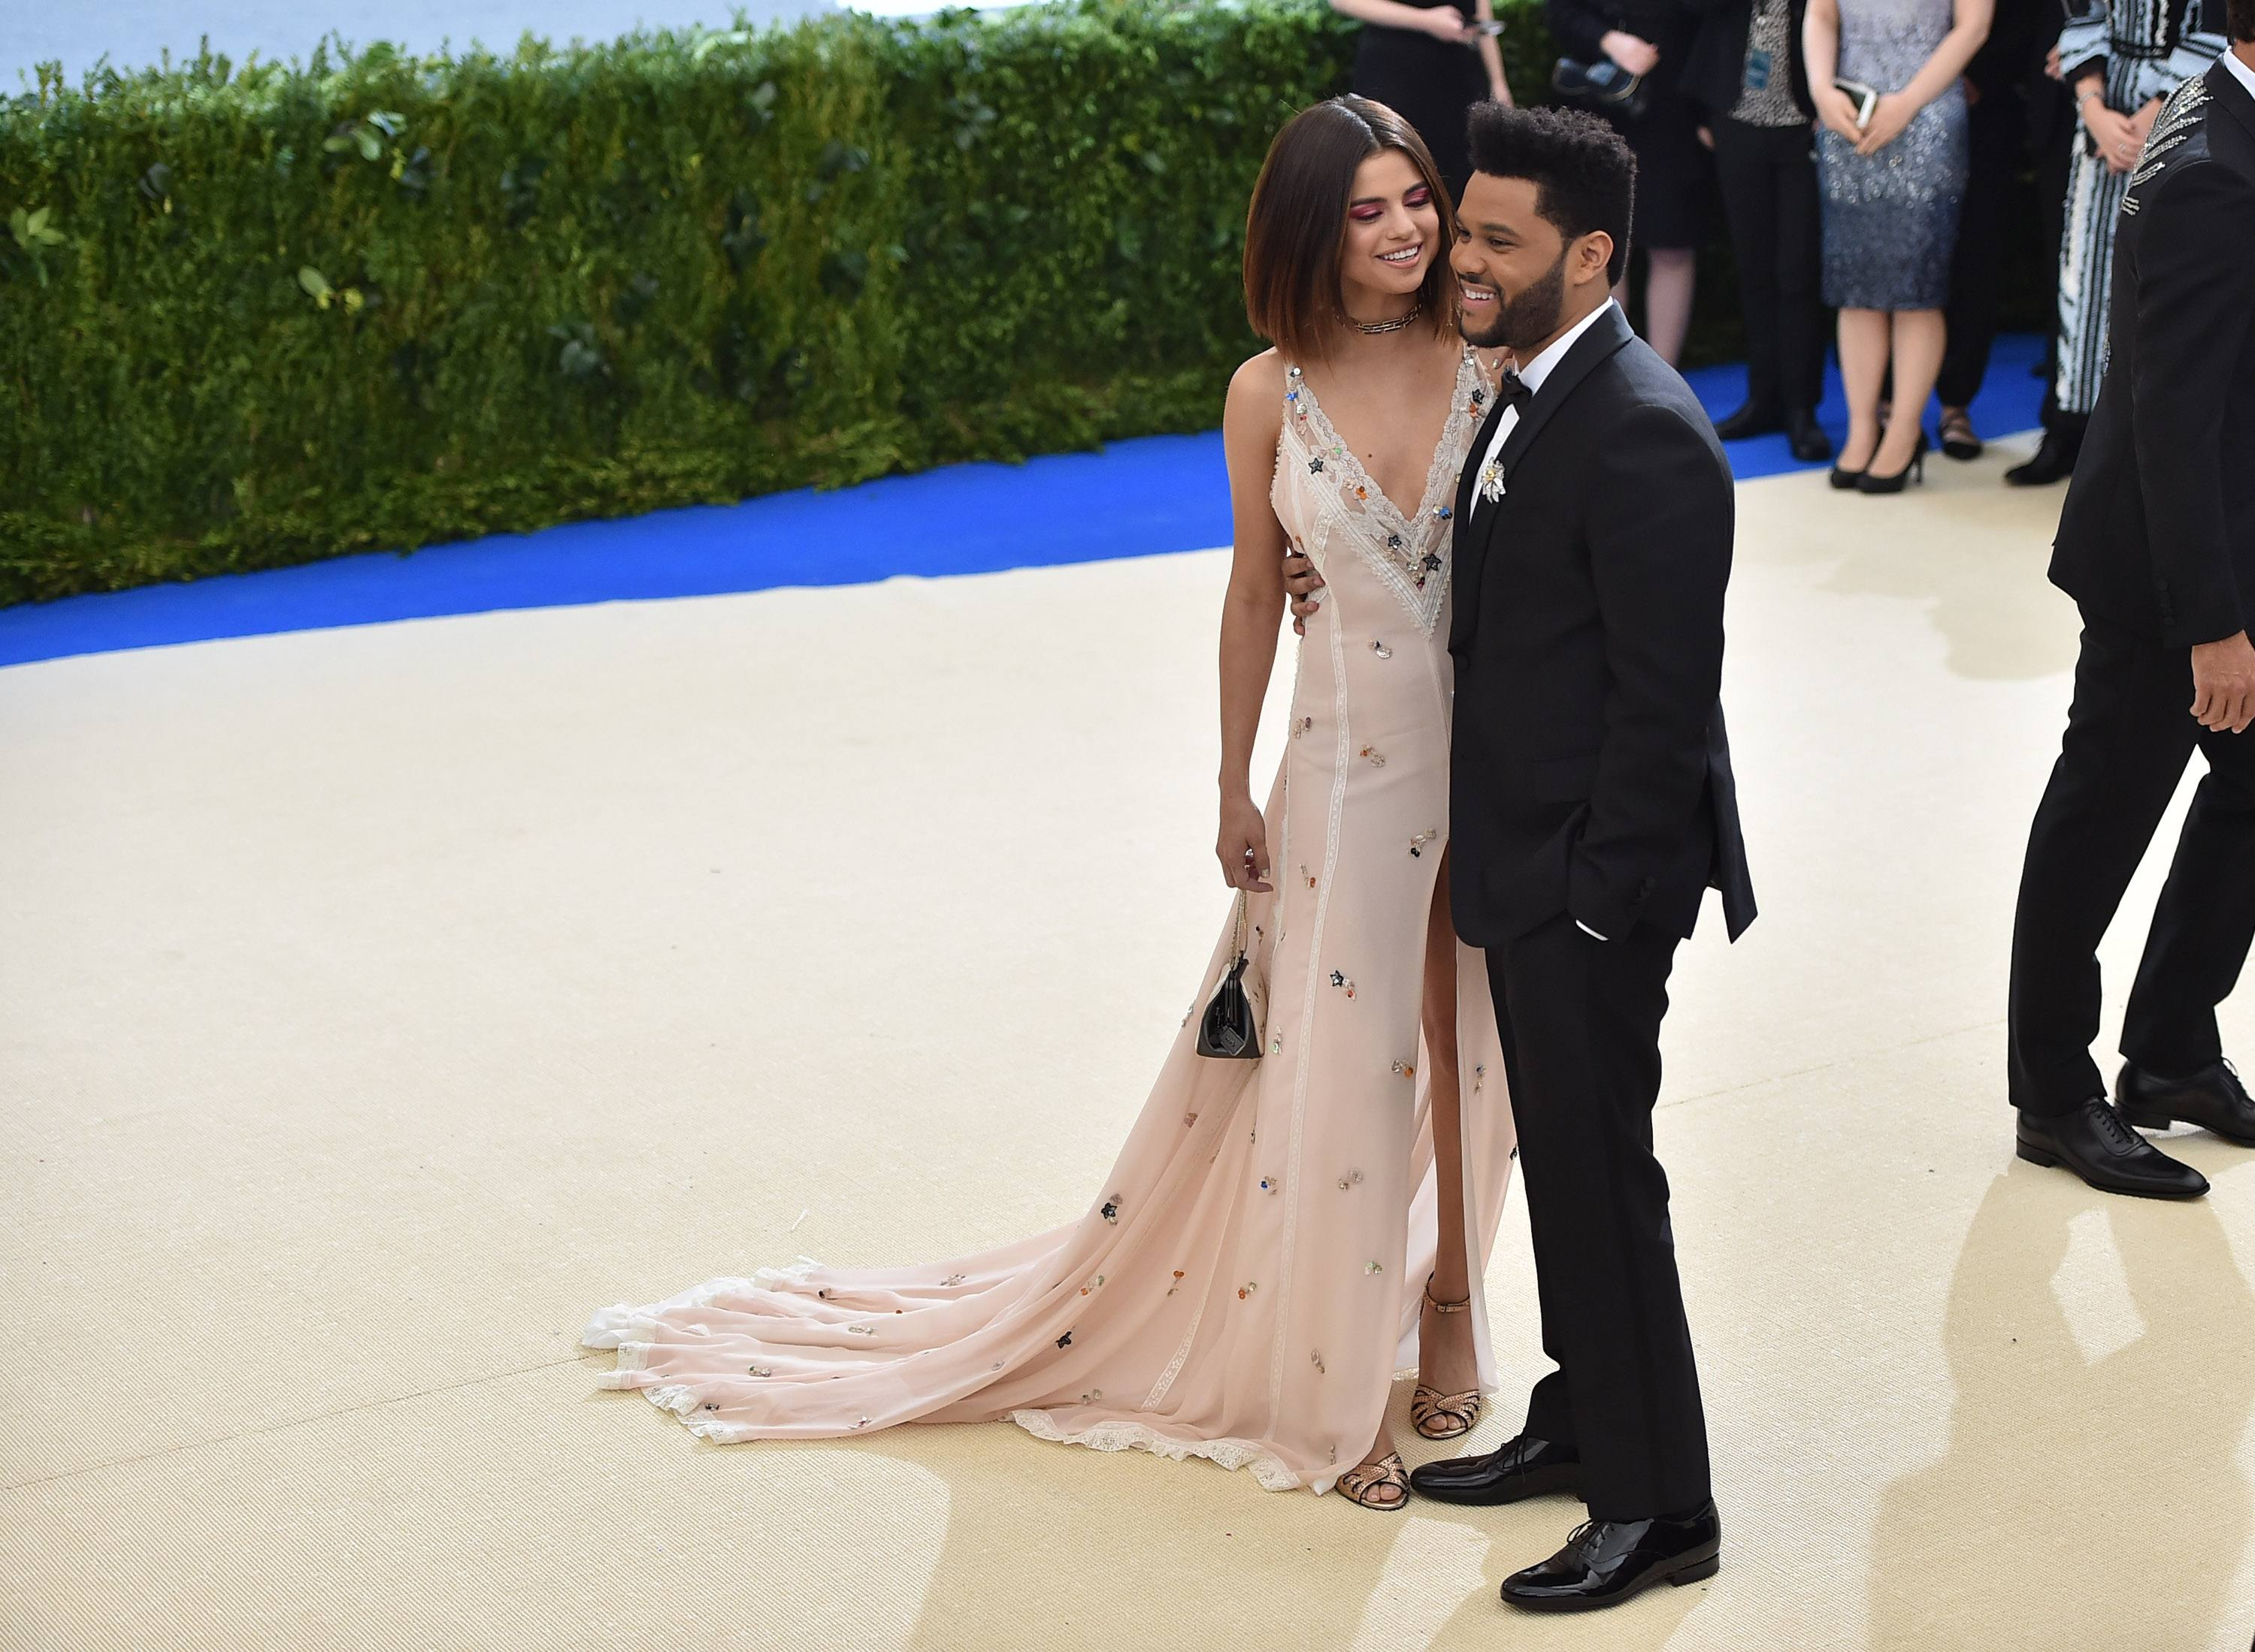 Selena Gomez and The Weeknd pose at the Met Gala